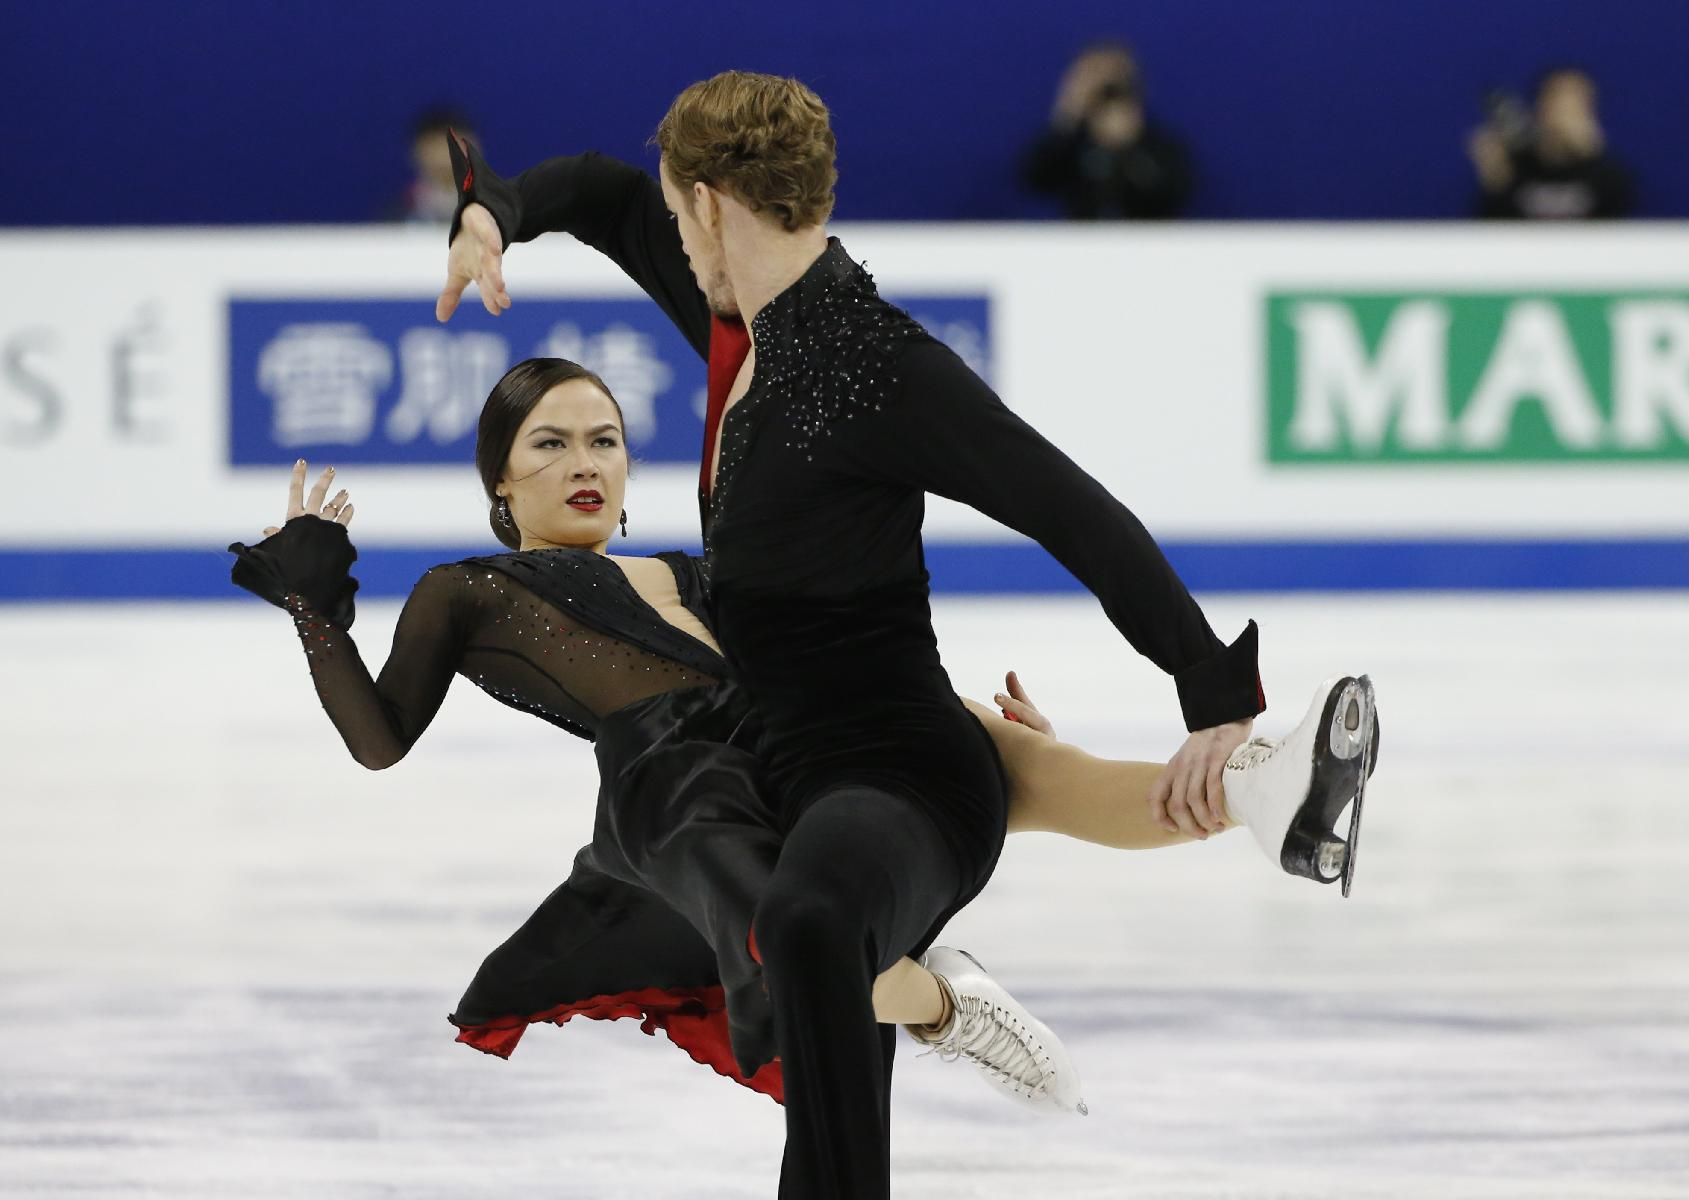 Canadians take big lead in pairs at figure skating worlds